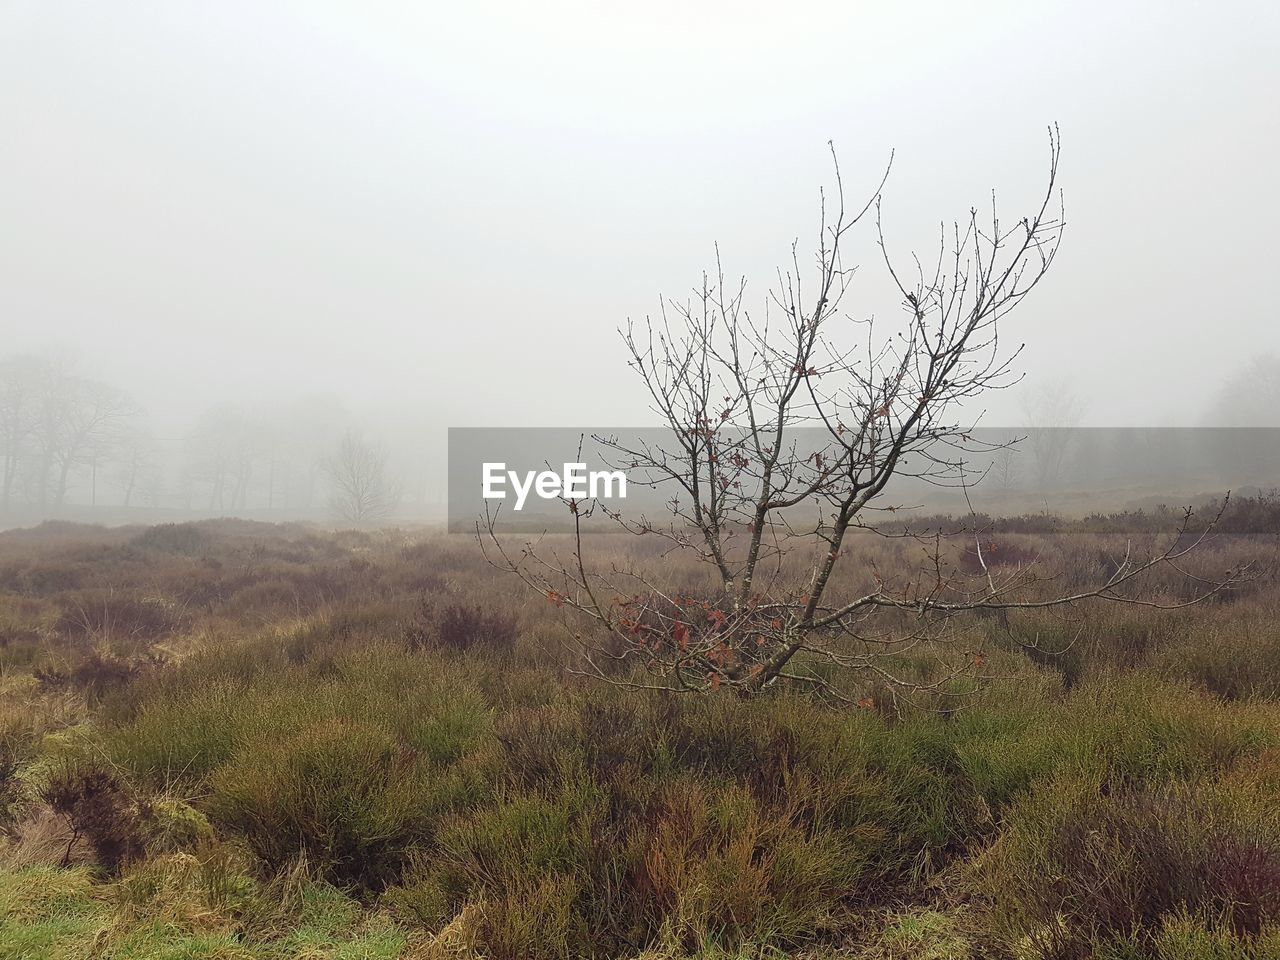 landscape, tranquility, tranquil scene, nature, bare tree, beauty in nature, non-urban scene, scenics, no people, outdoors, tree, fog, day, grass, branch, sky